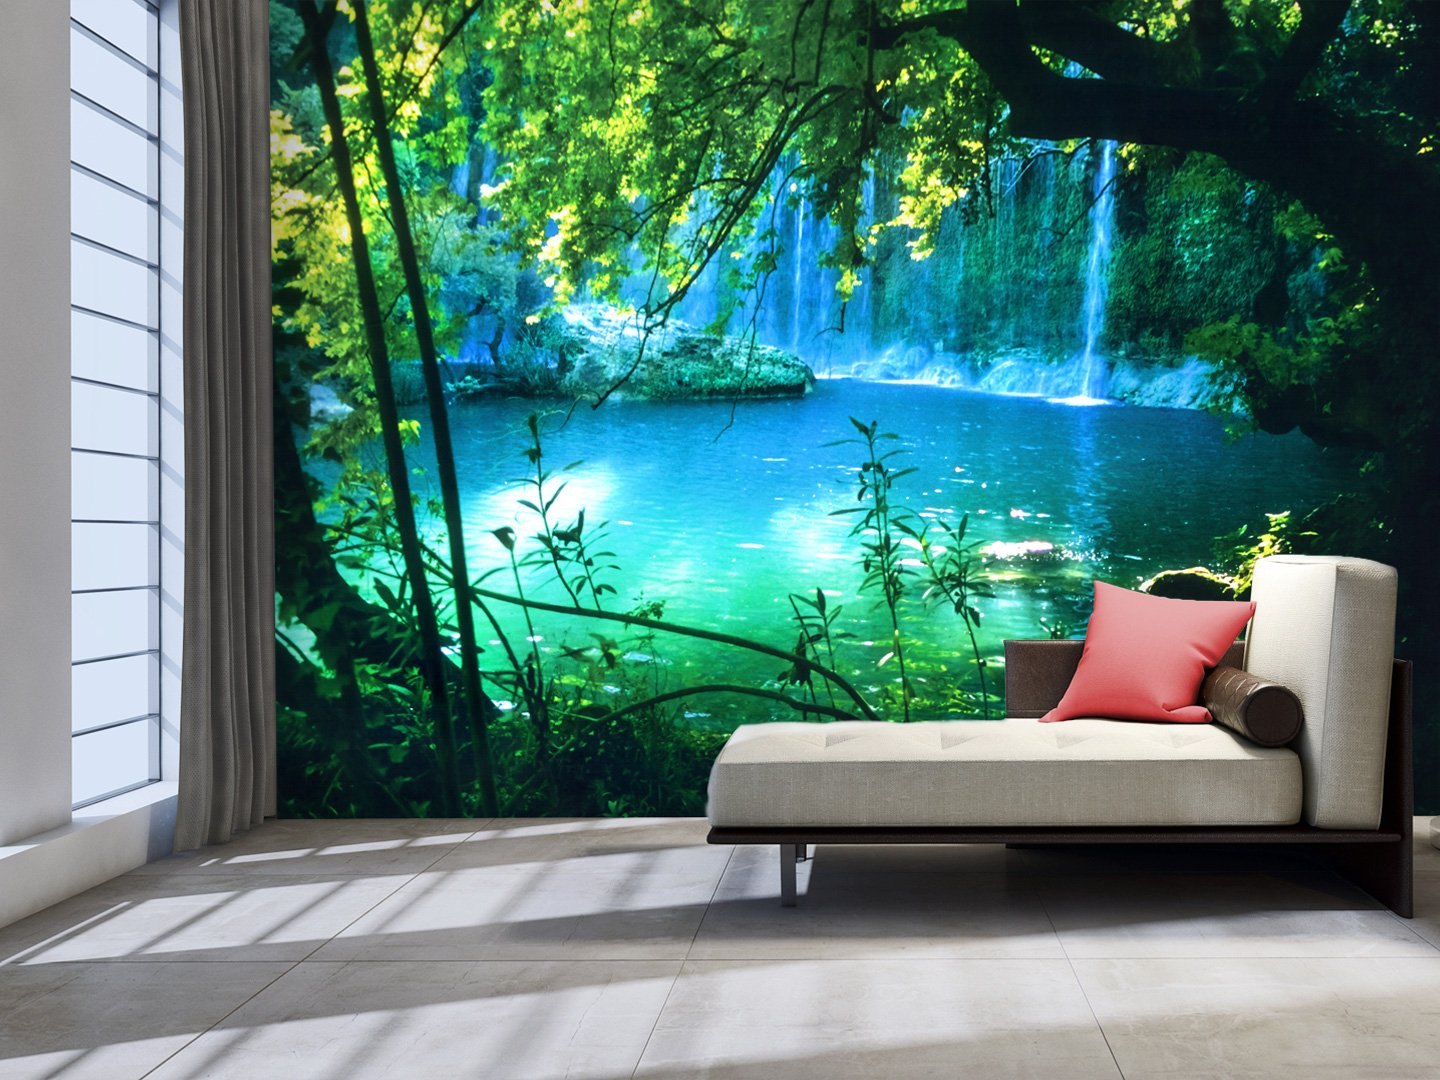 artgeist Photo Wallpaper Waterfall Nature 154''x110'' XXL Peel and Stick Self-Adhesive Foil Wall Mural Removable Sticker Premium Print Picture Image Design Home Decor c-B-0132-a-a by artgeist (Image #3)